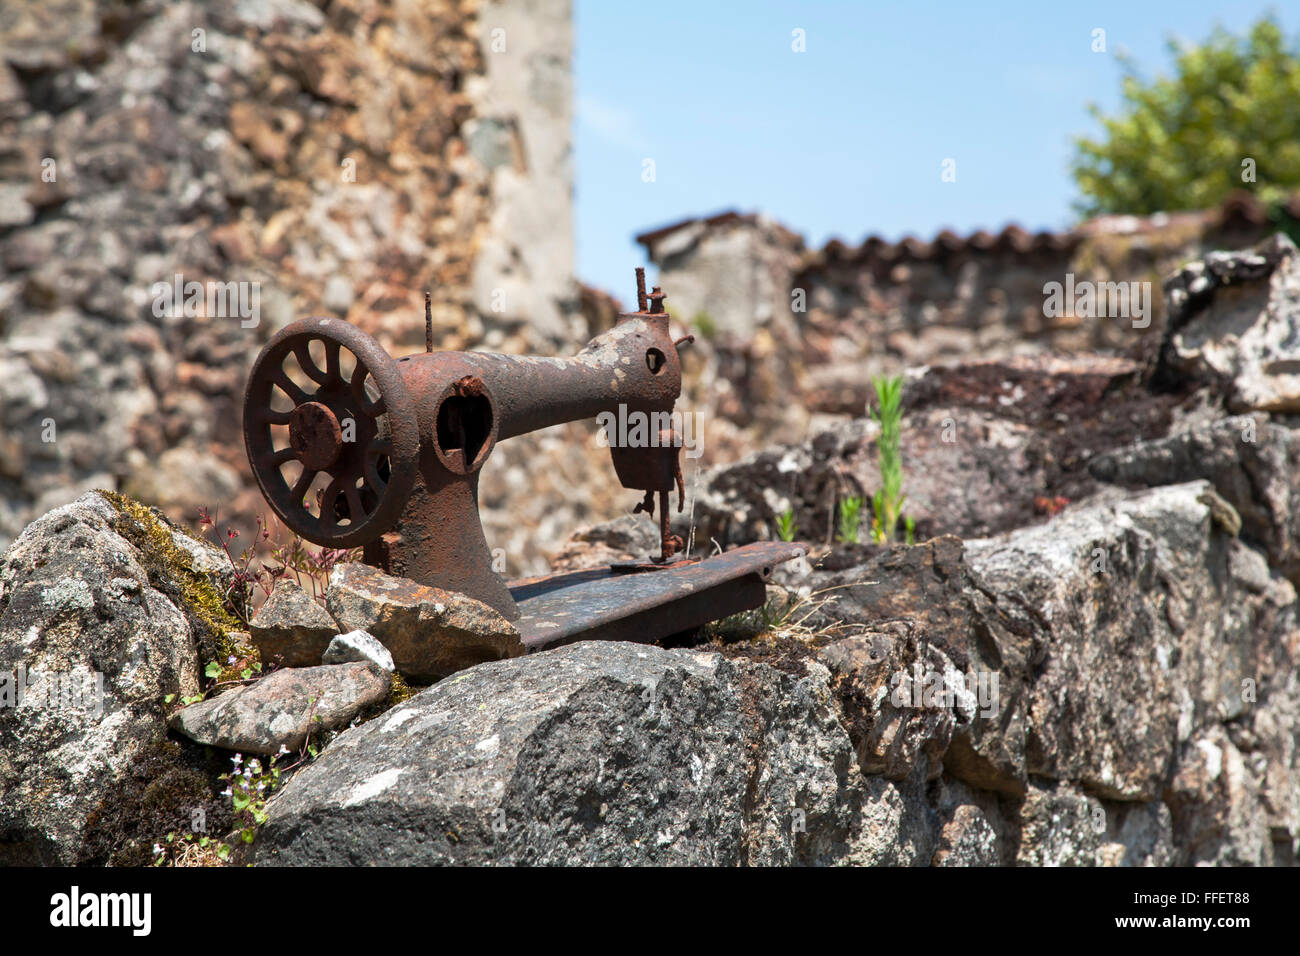 Rusting sewing machine in village of Oradour sur Glane, Haute Vienne, France - Stock Image